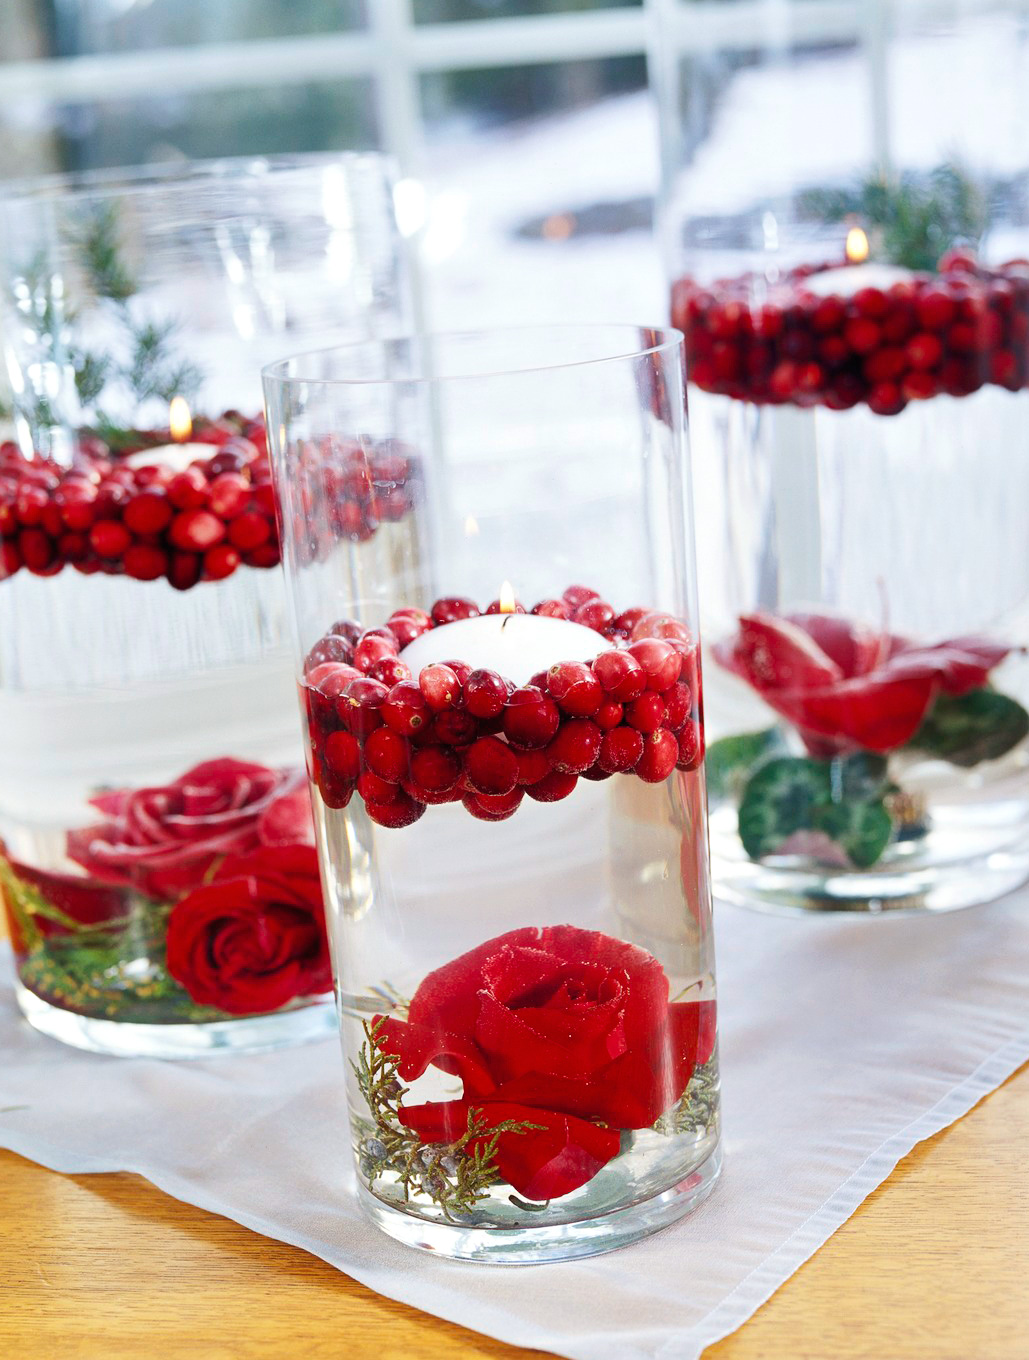 Cranberry flower cylinders